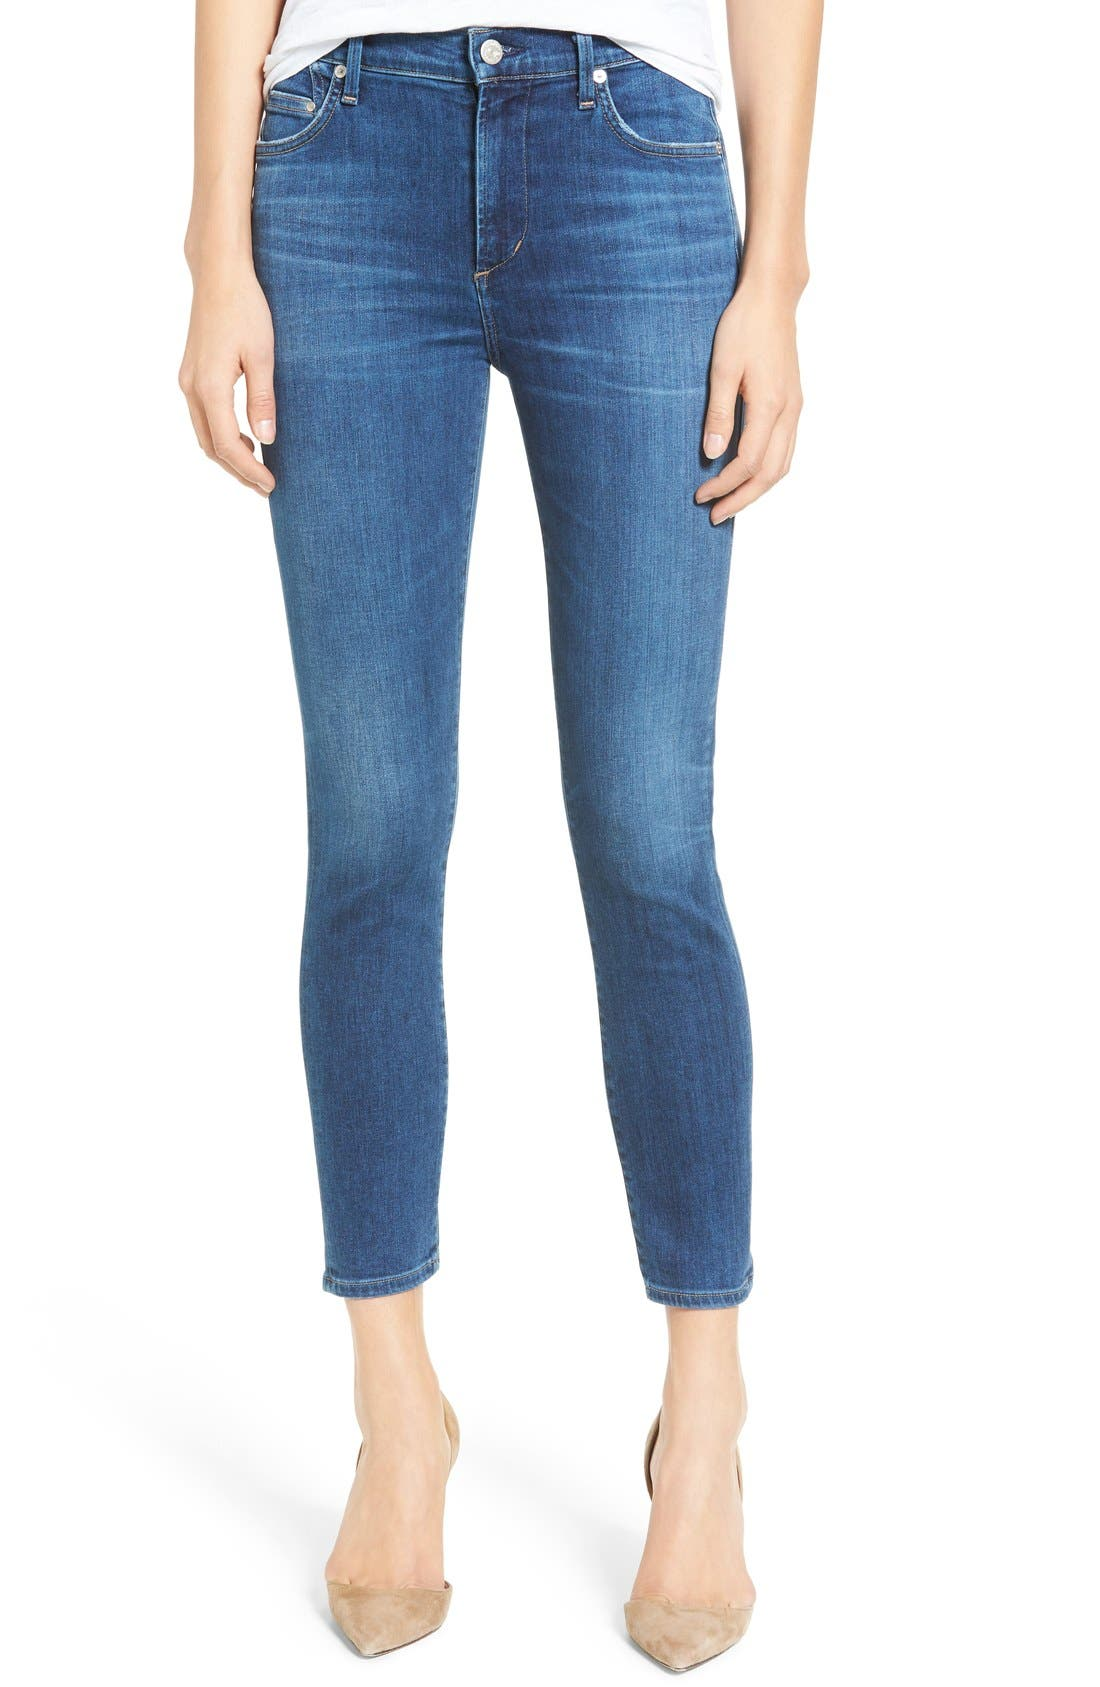 Rocket High Waist Crop Skinny Jeans,                             Main thumbnail 1, color,                             Echoes